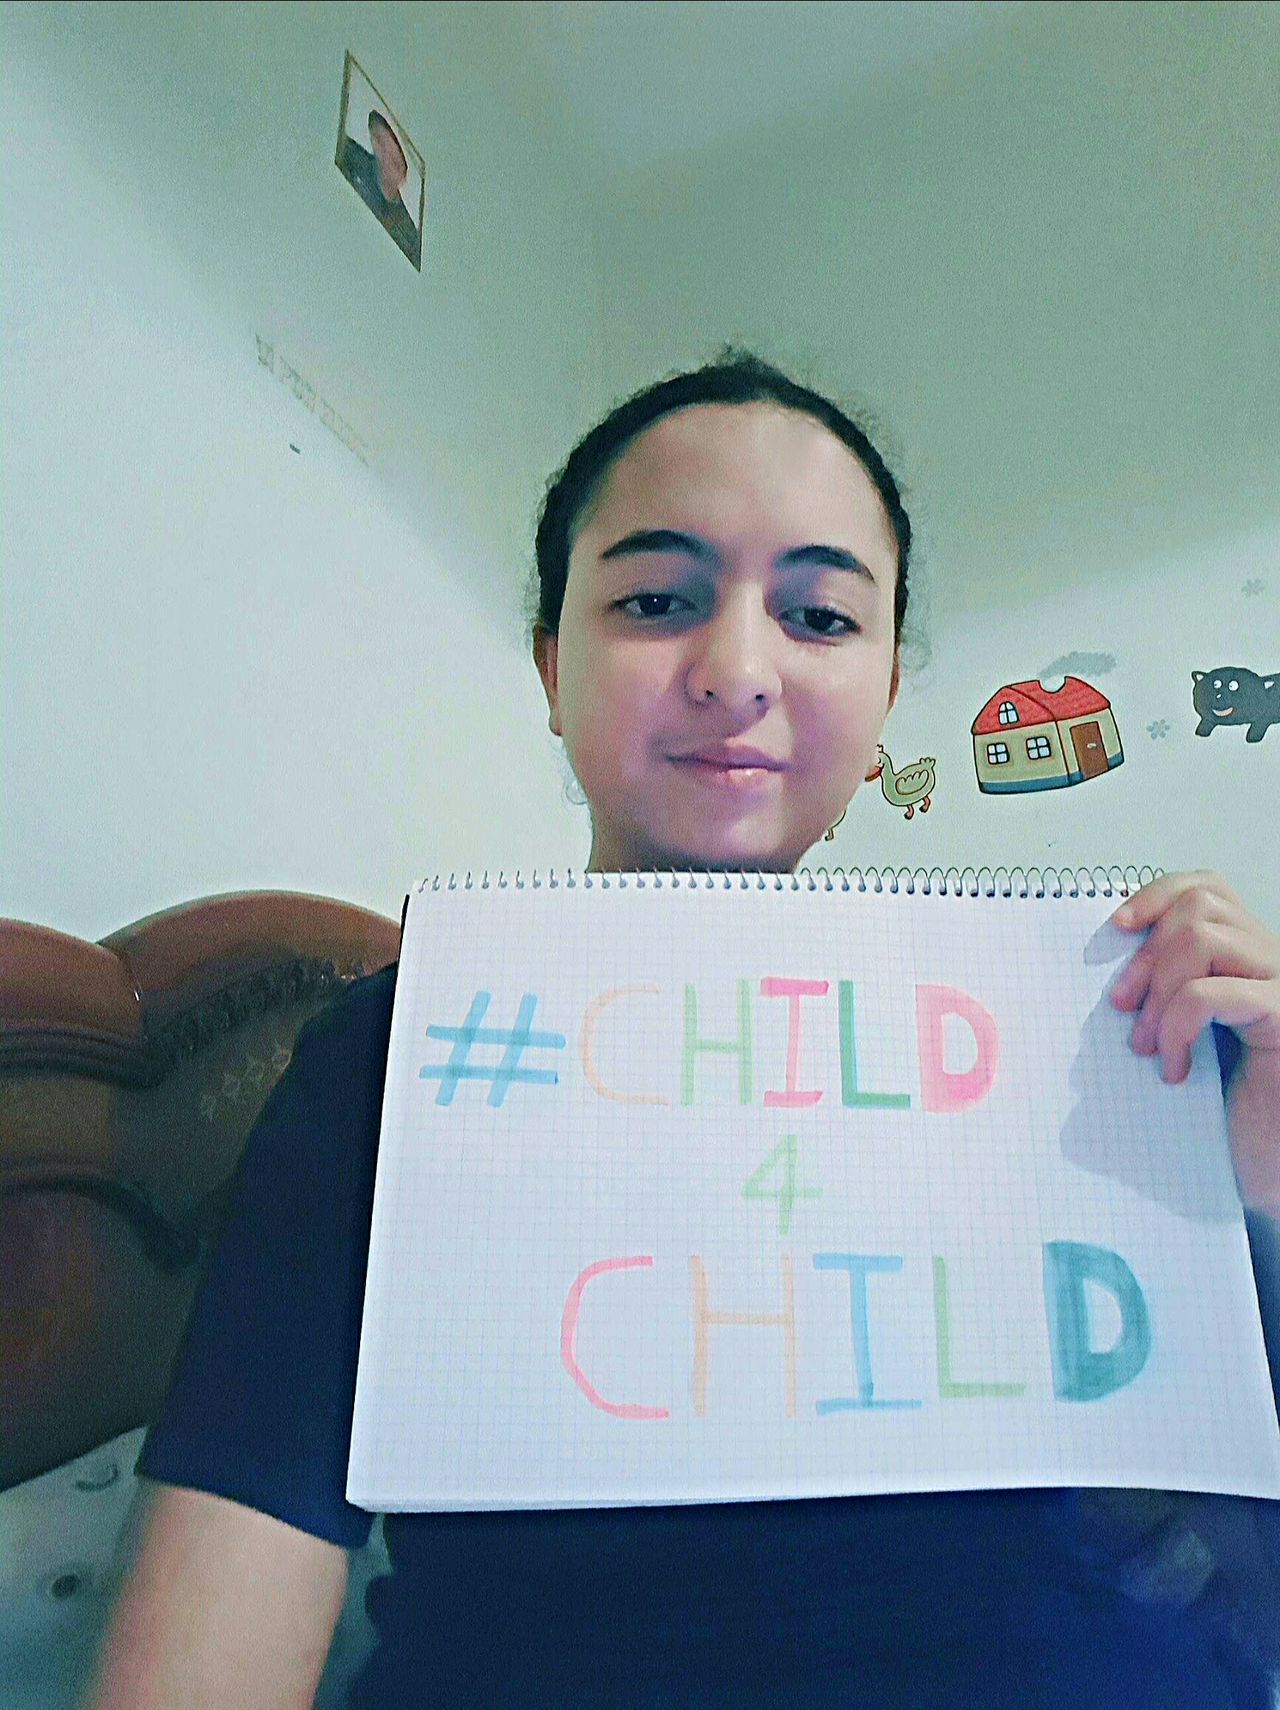 Child4child help raise awareness about childhood cancer Cancergetout WeAreOne Love Life Hatecancer Likeforlike Follow Likes Like4likes Followers FollowMeOnInstagram Followforfollow Like4like Follow Follow Follow Likesforlikes Follower Follow4follow Follows Followme Likealways Followplease Followshoutoutlikecomment Like Follow #f4f #followme #TagsForLikes #TFLers #followforfollow #follow4follow #teamfollowback #followher #followbackteam #followh